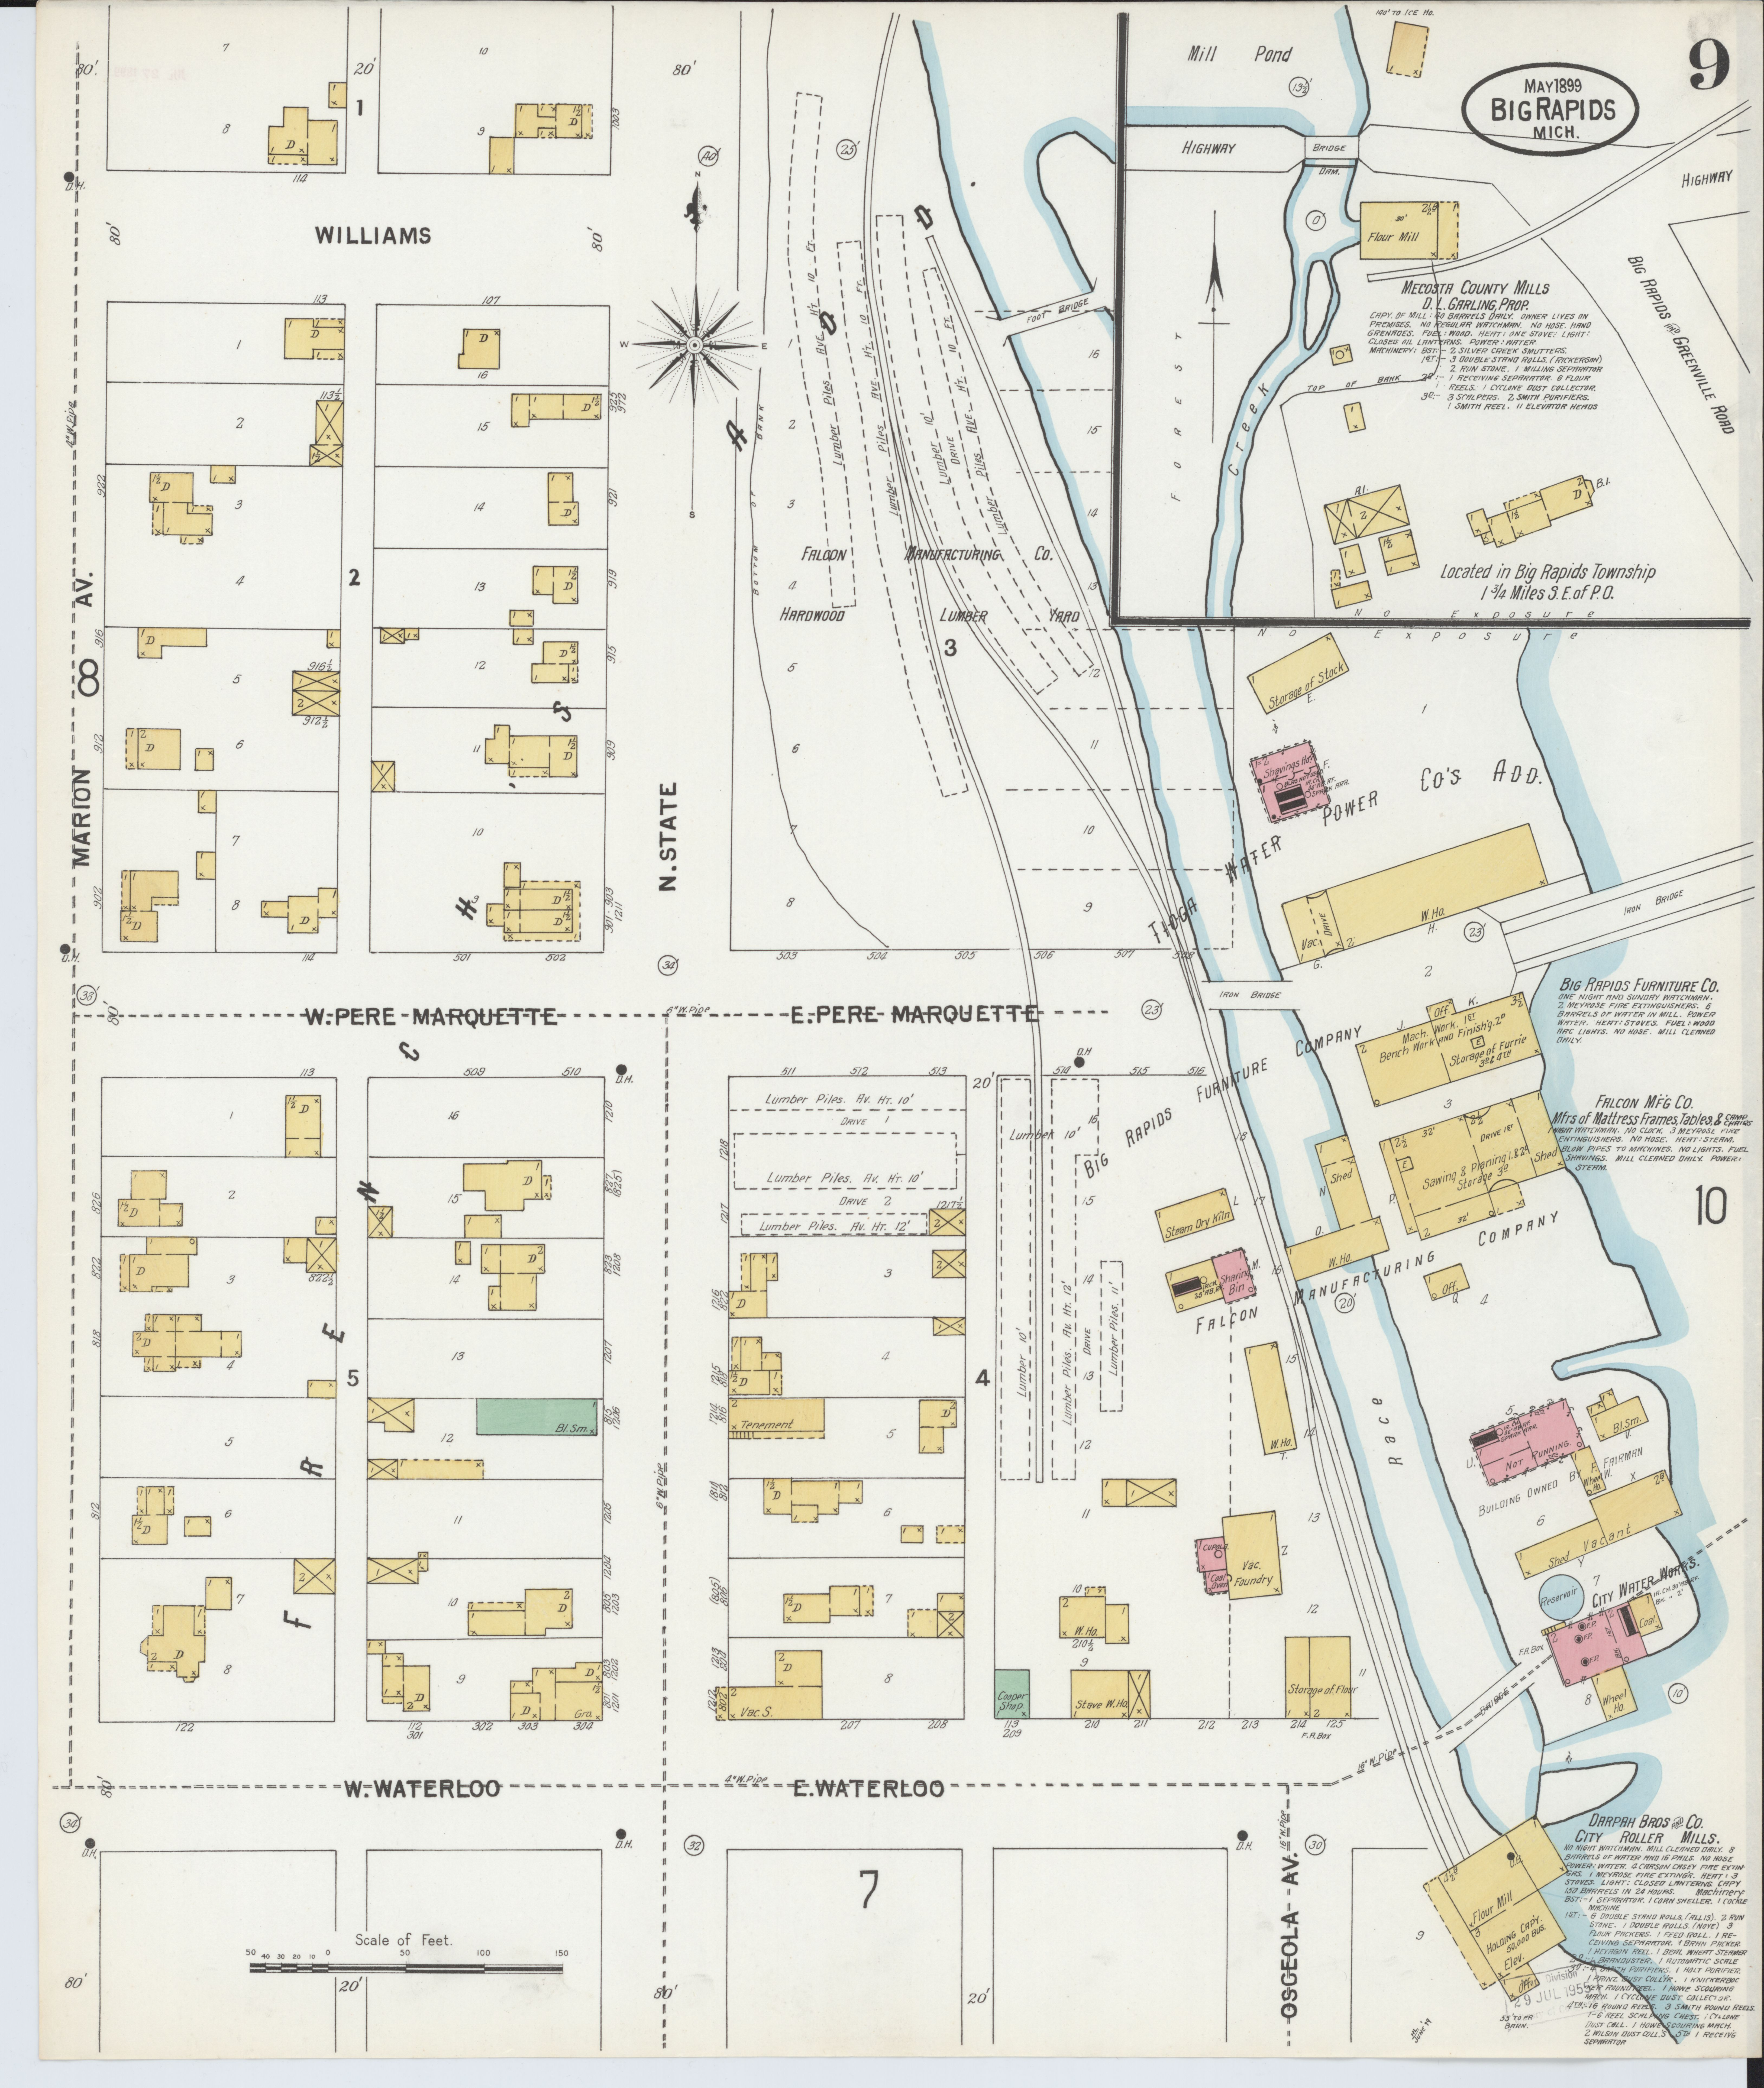 Mecosta Michigan Map.File Sanborn Fire Insurance Map From Big Rapids Mecosta County